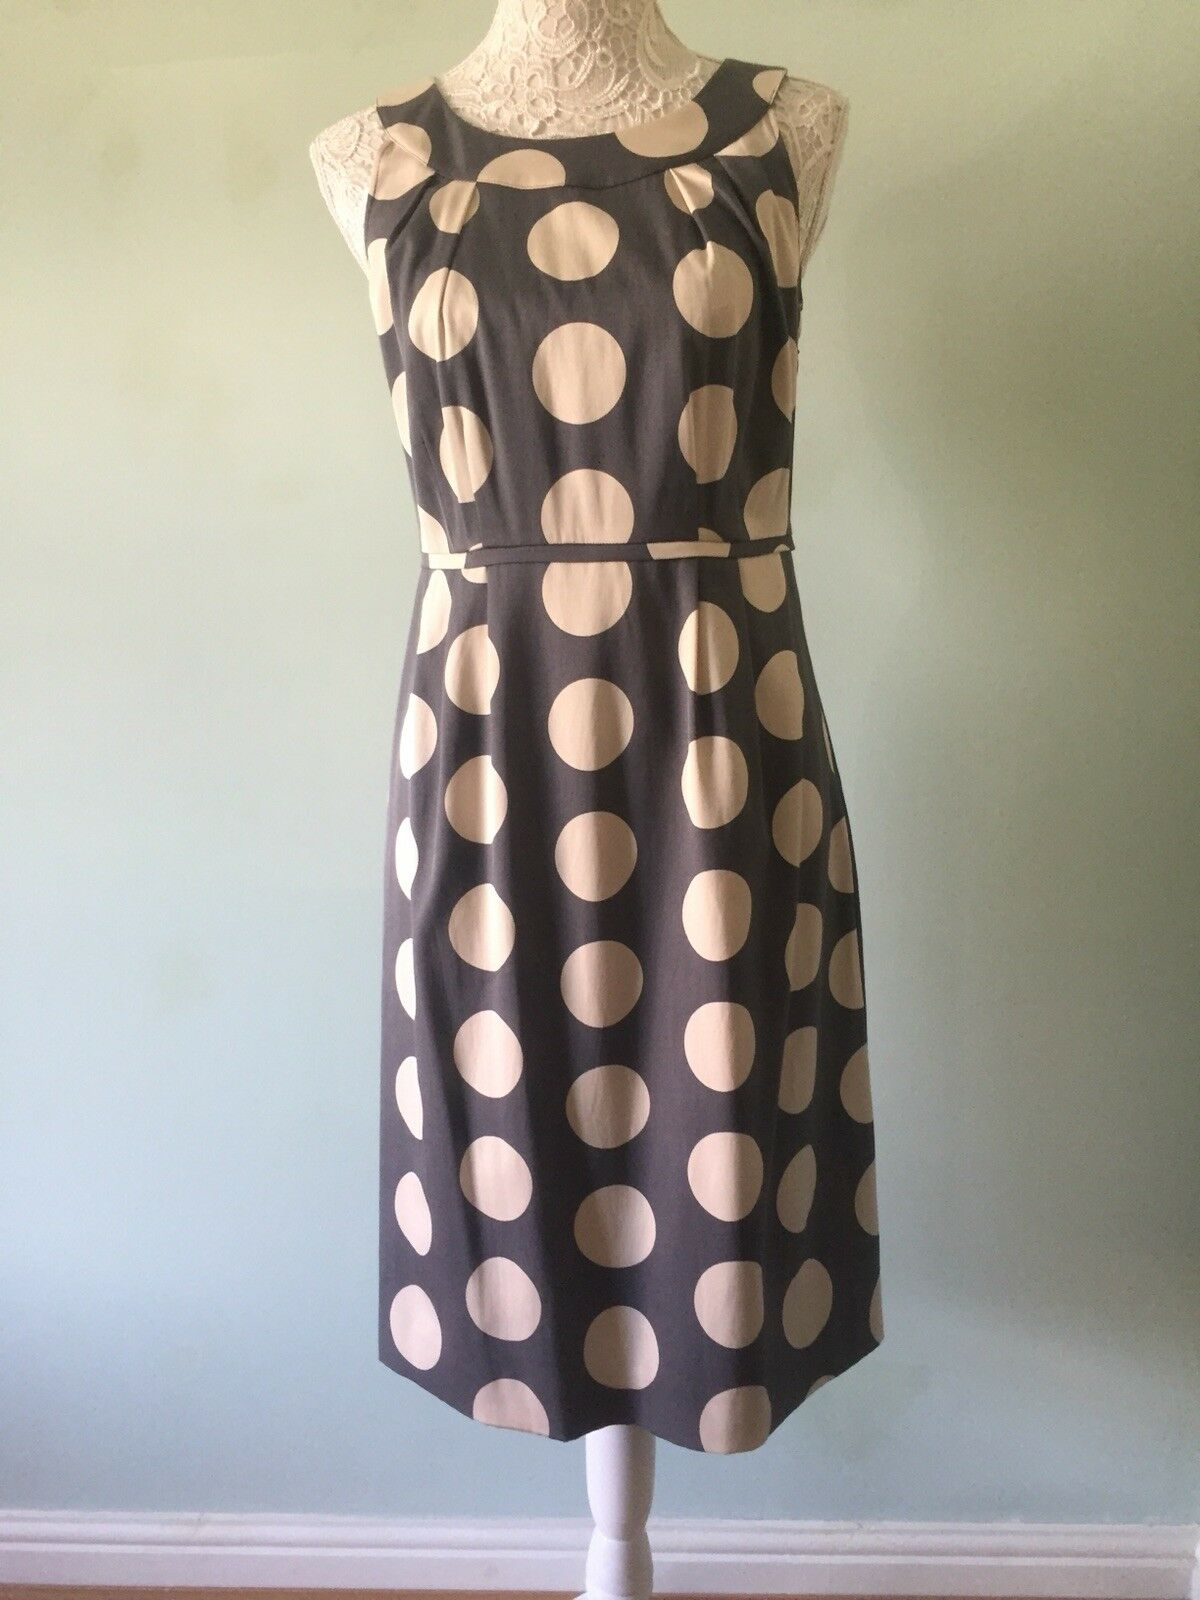 6  CYOB, Boden Dress, Size 10, Grey Ivory Spot, Cotton, Lined, Occasion, VGC